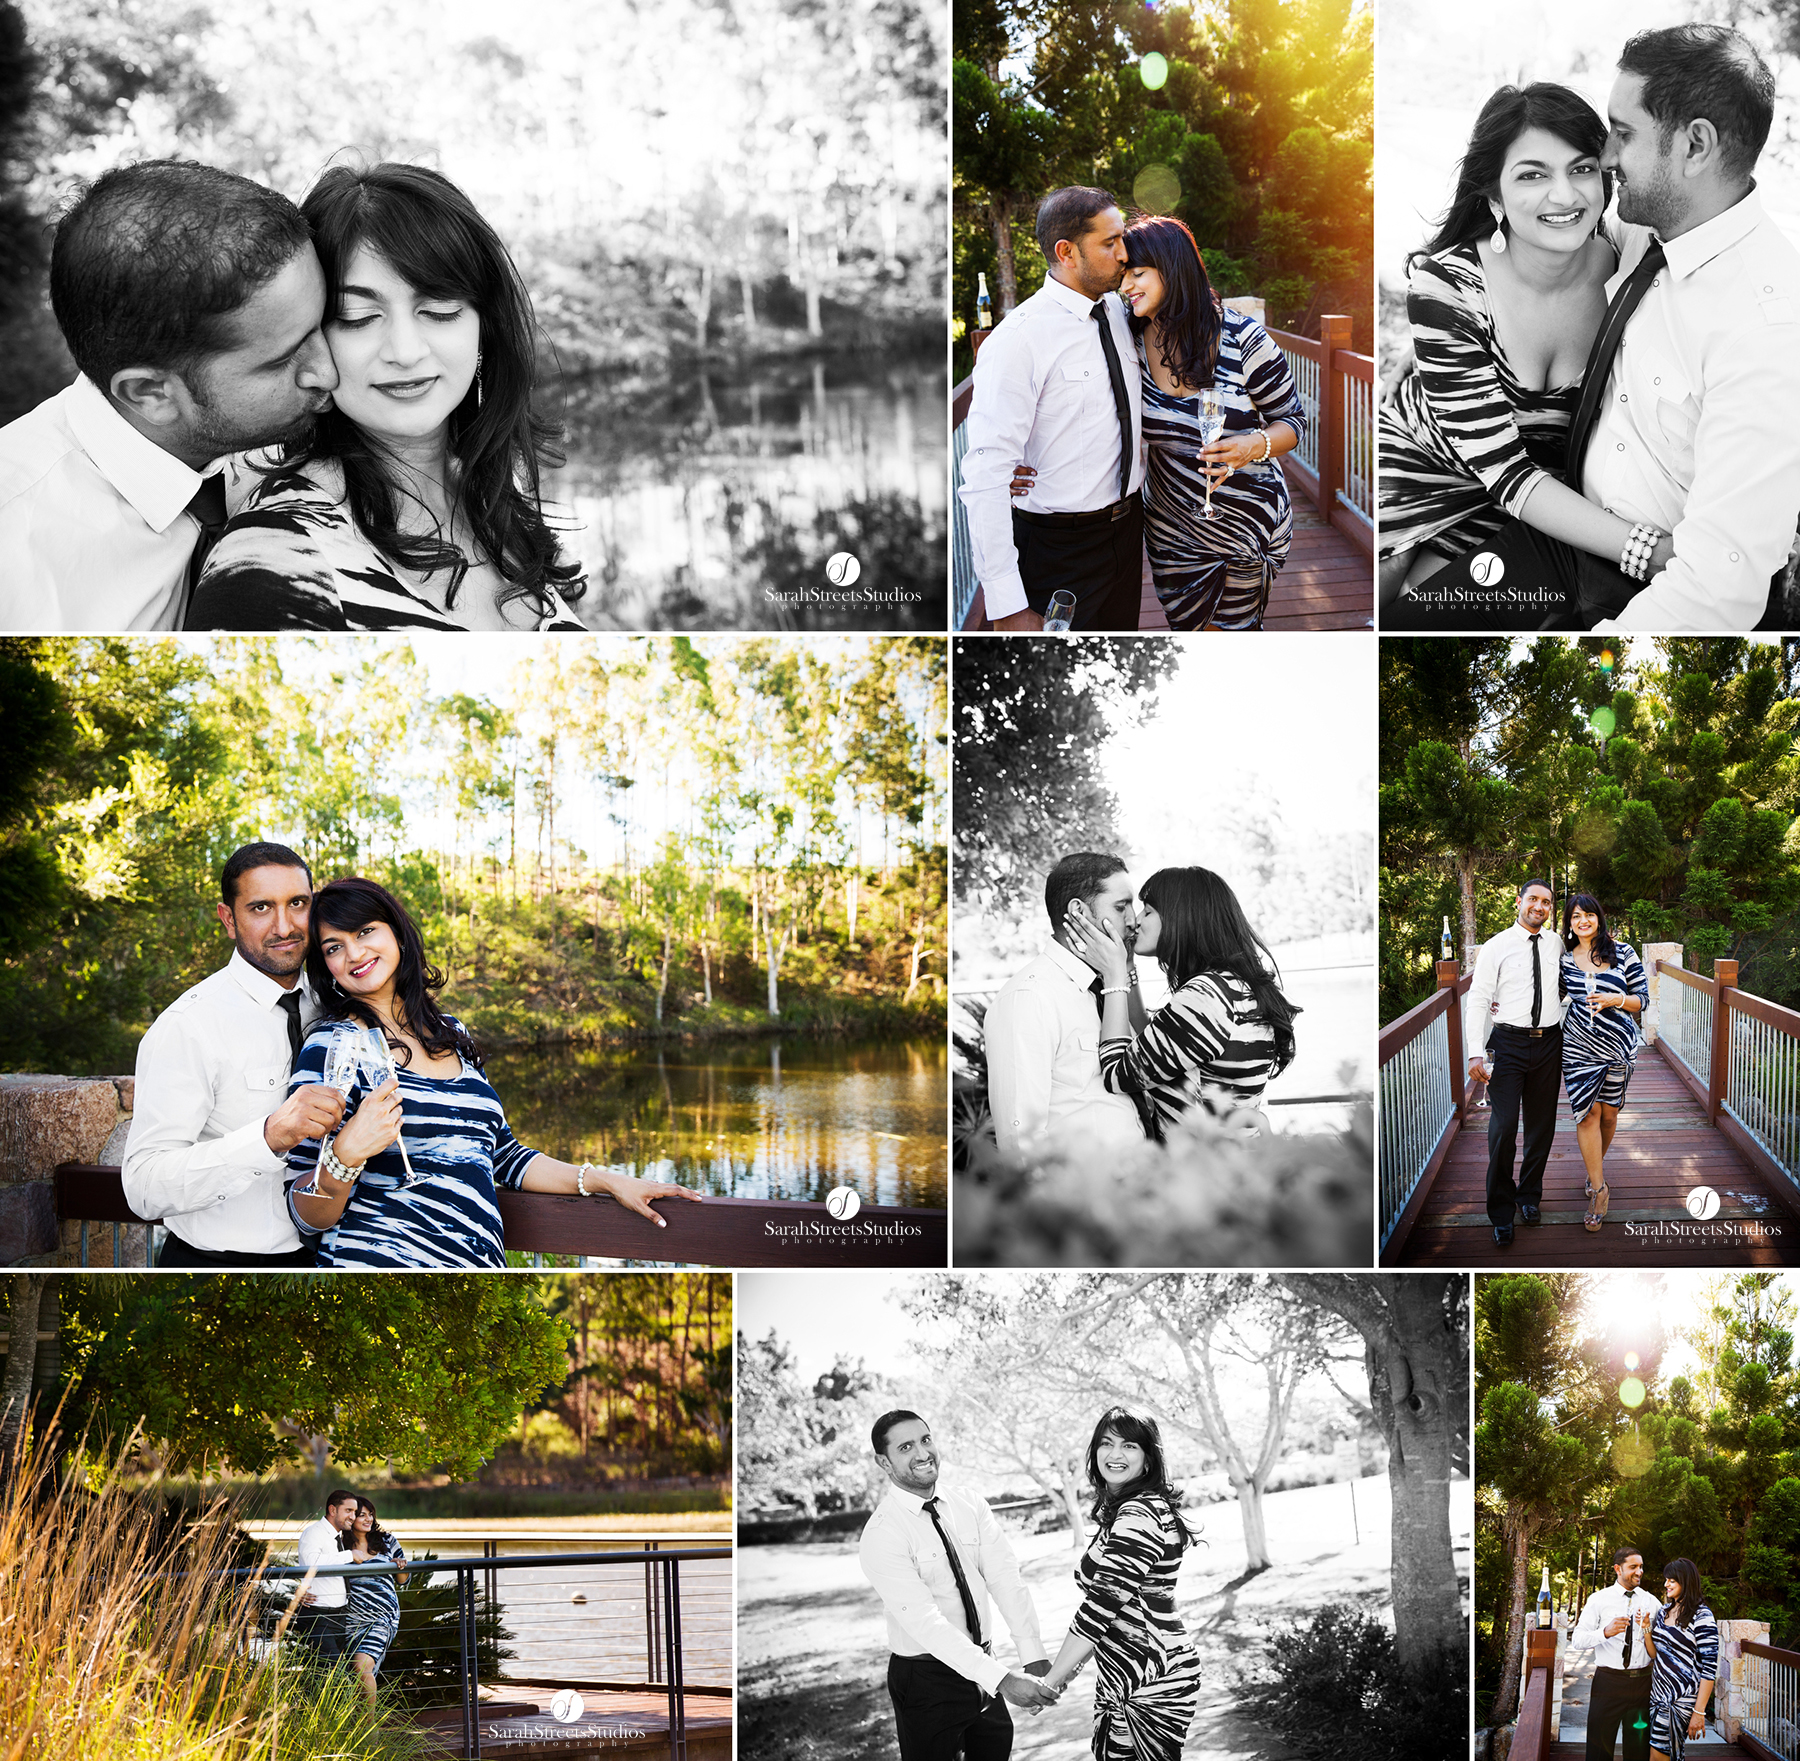 portrait photographer brisbane, portrait photographer ipswich qld, family photographer brisbane, family photography ipswich, anniversary photography ipswich, sarah streets studios